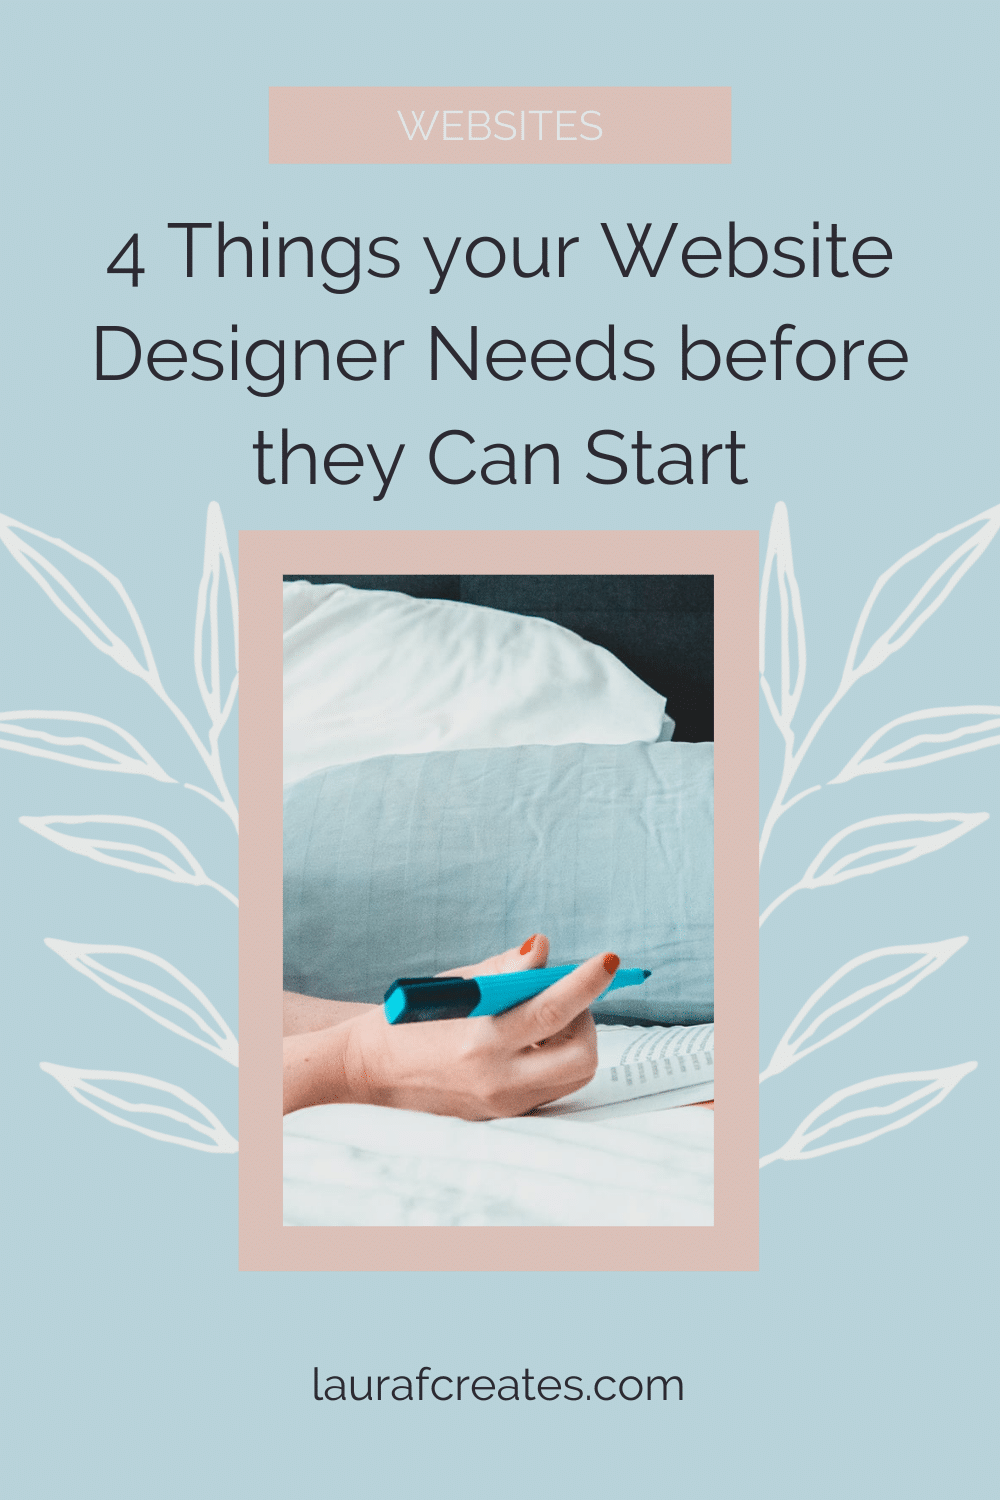 4 Things your Website Designer Needs before they Can Start by Laura F Creates, includes tips for building your website & websites for business. Click through to browse the blog or for more website tips.